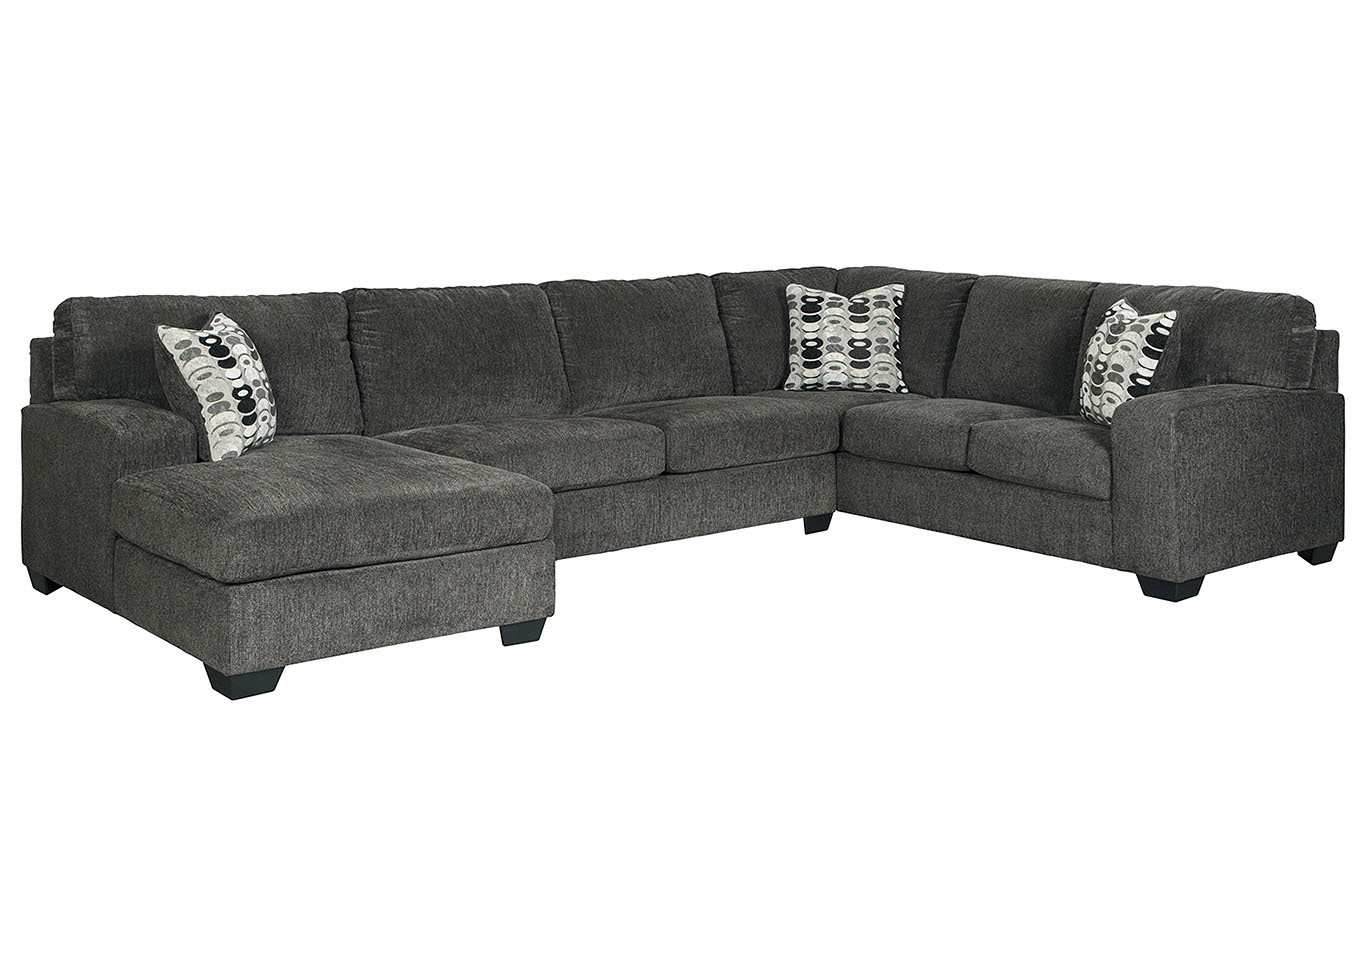 Ballinasloe Smoke LAF Chaise Sectional,Signature Design By Ashley